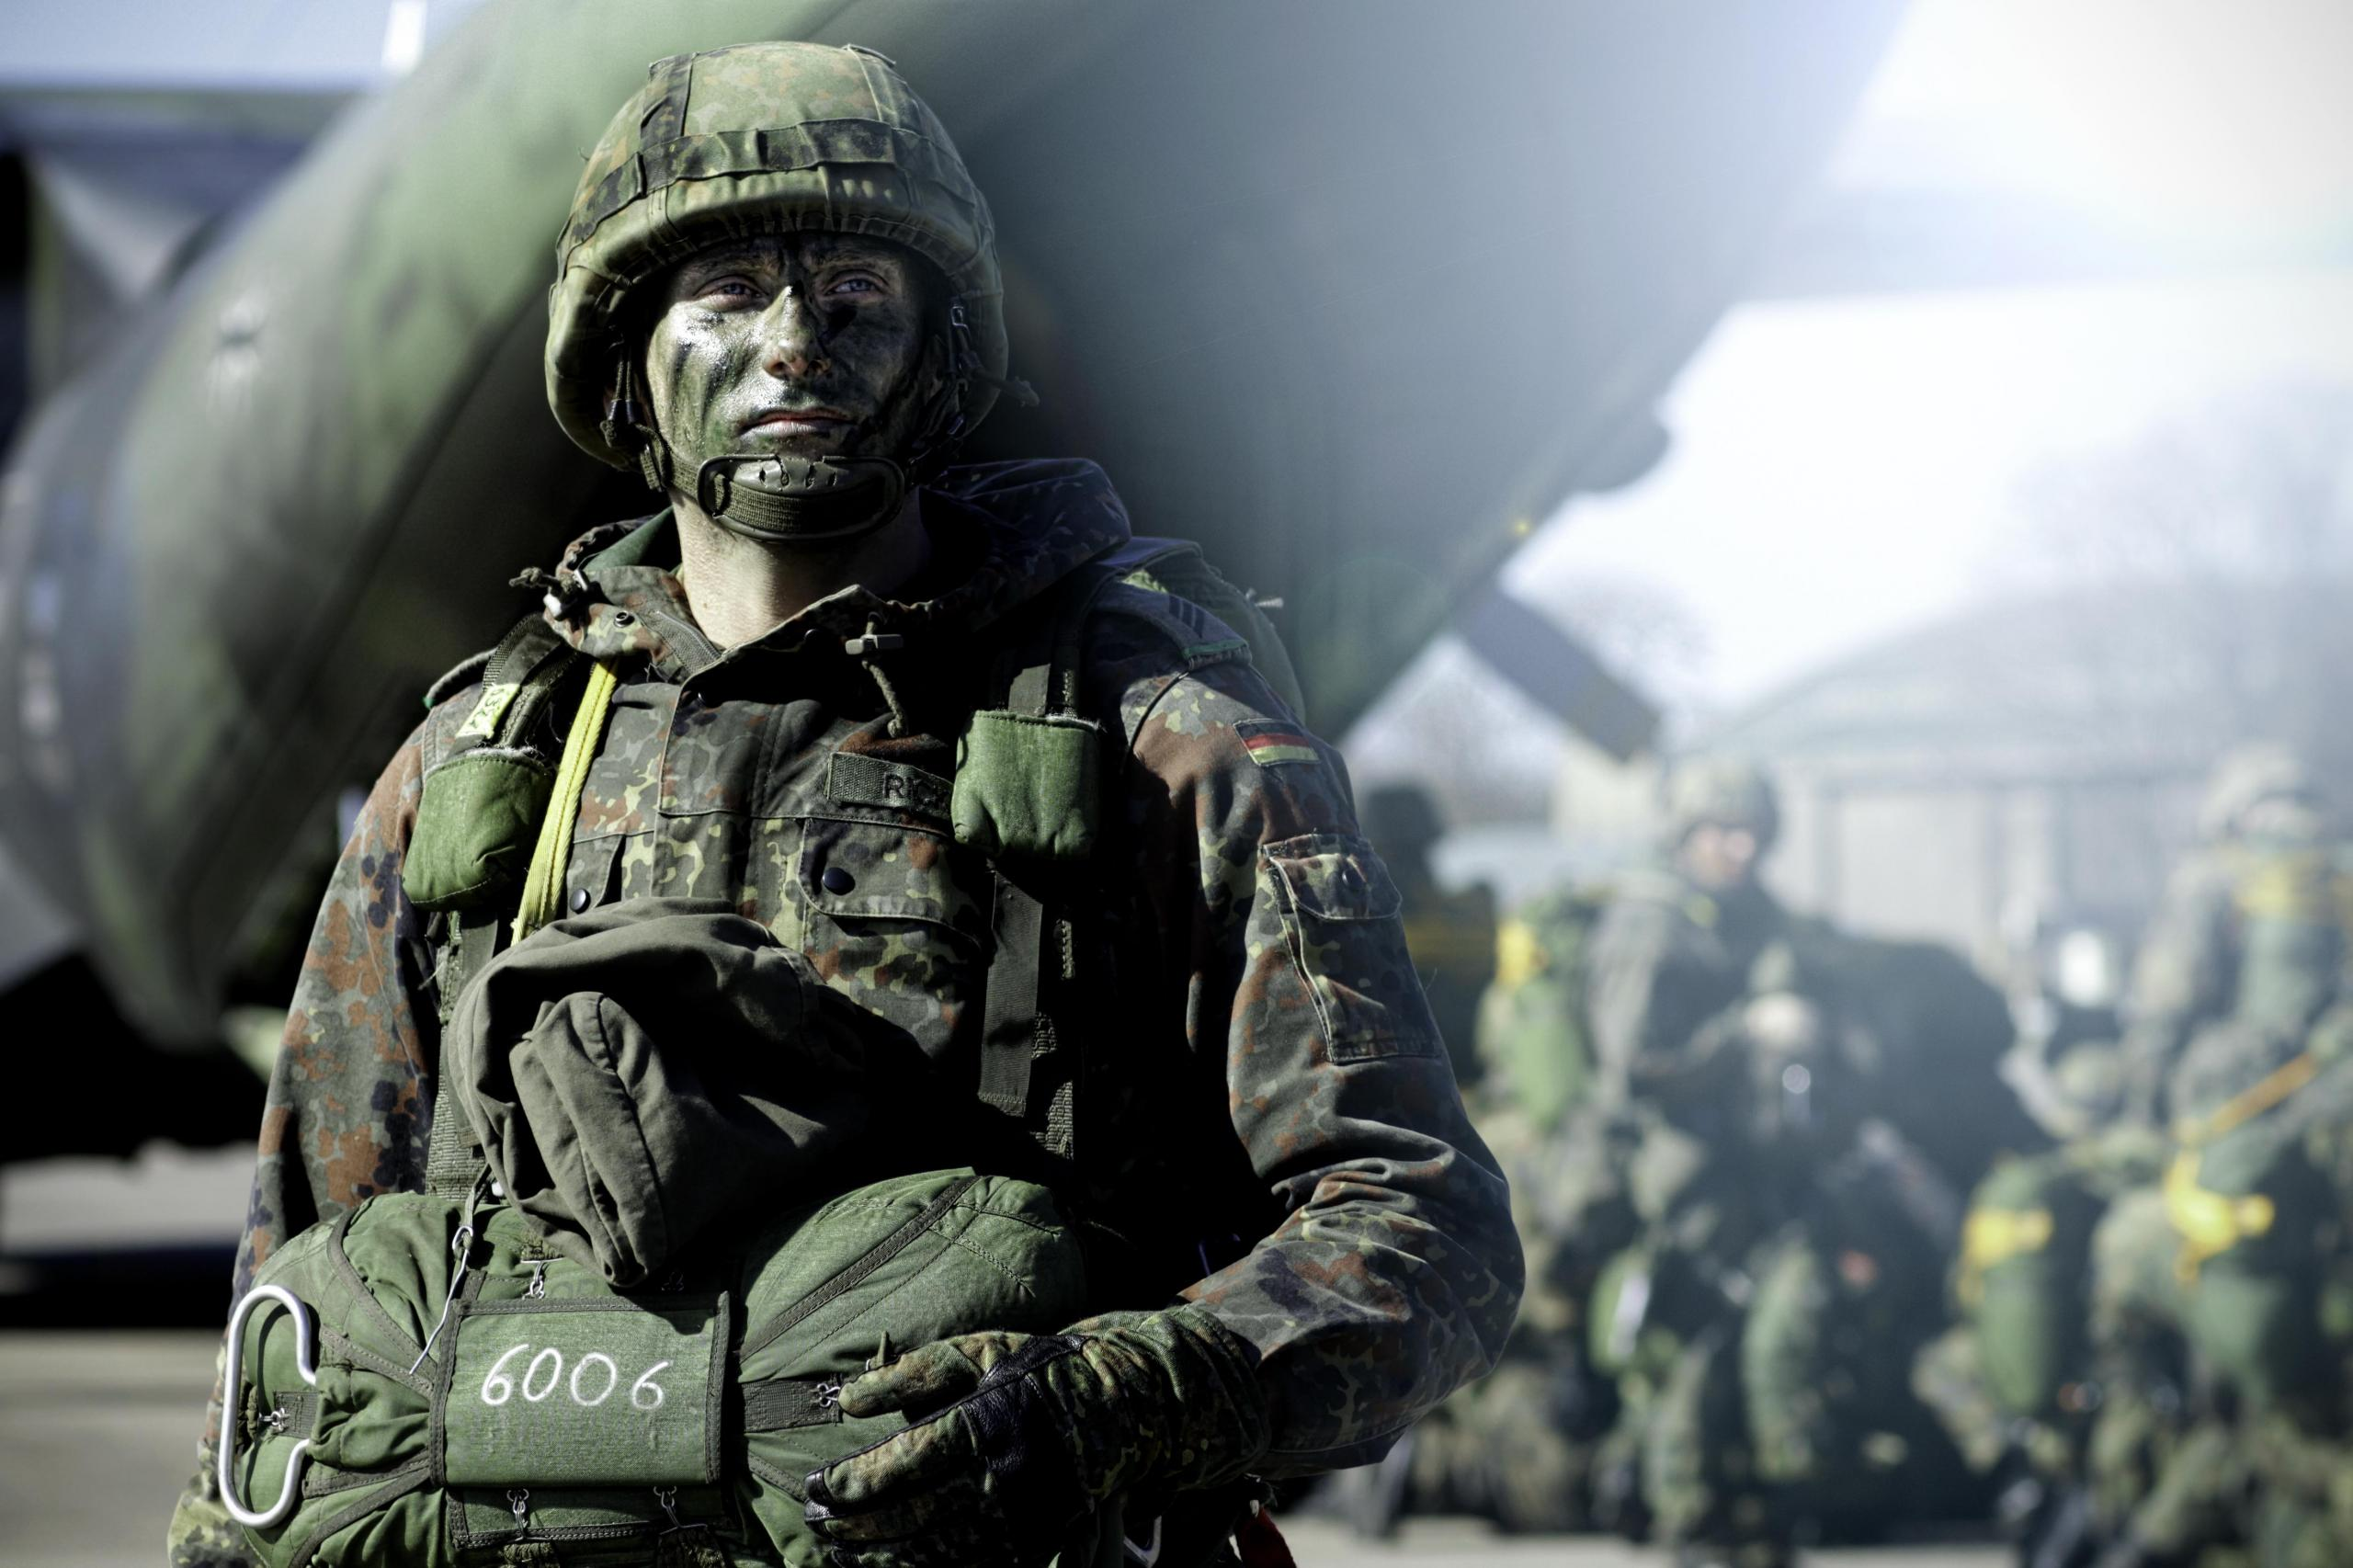 Ready for duty. German paratrooper, 2012.